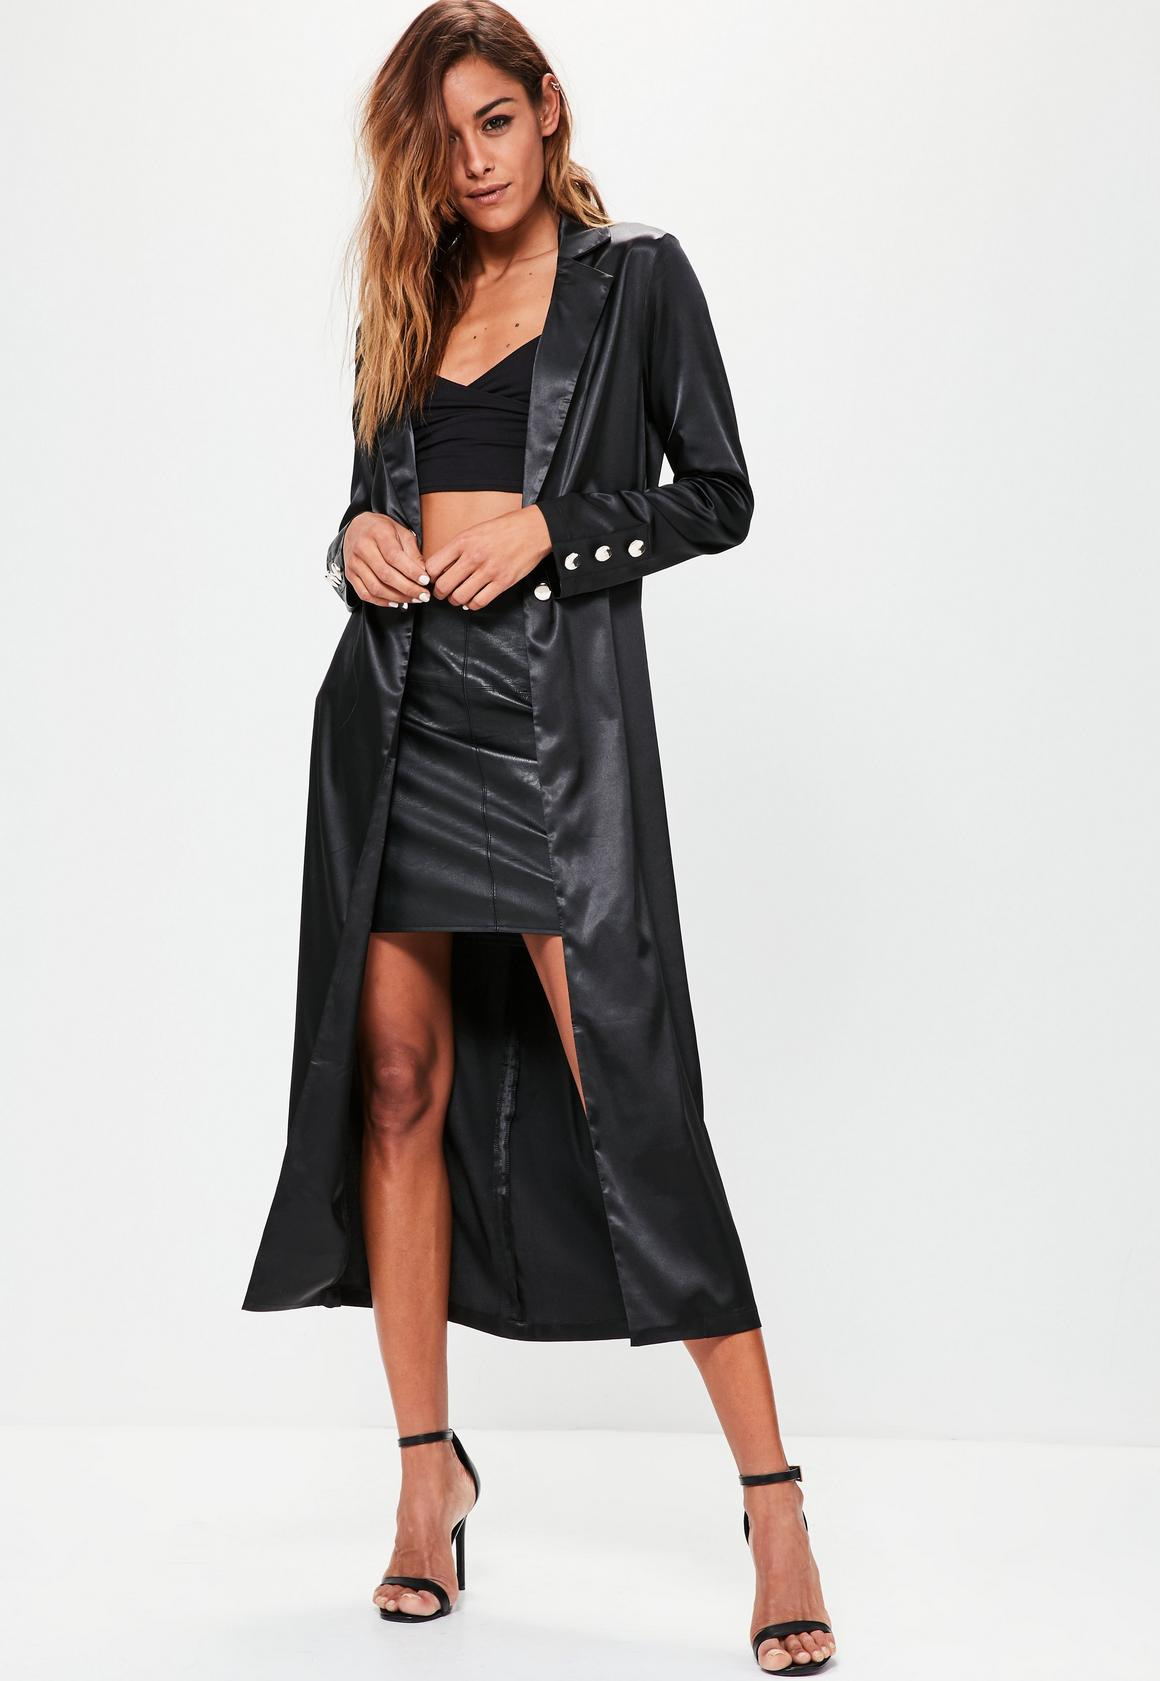 Black dress and coat -  Black Satin Gold Button Detail Duster Jacket